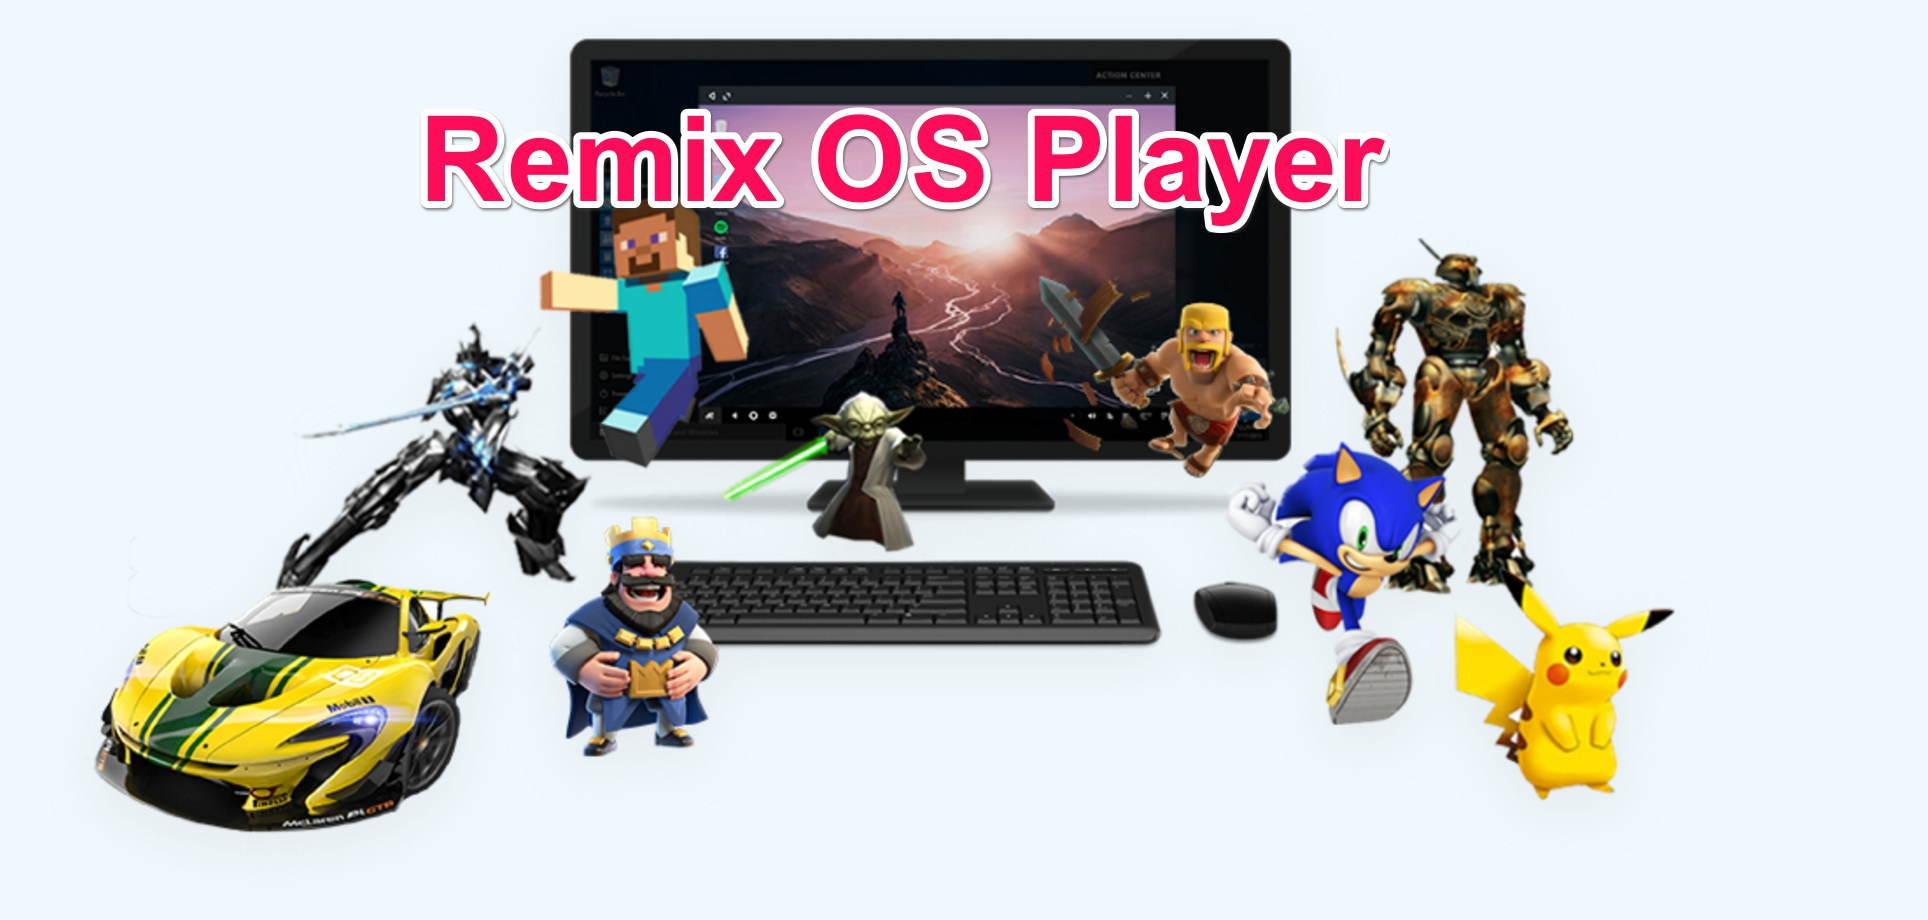 Download and install Remix OS Player for PC Windows 7,8,10. | AxeeTech